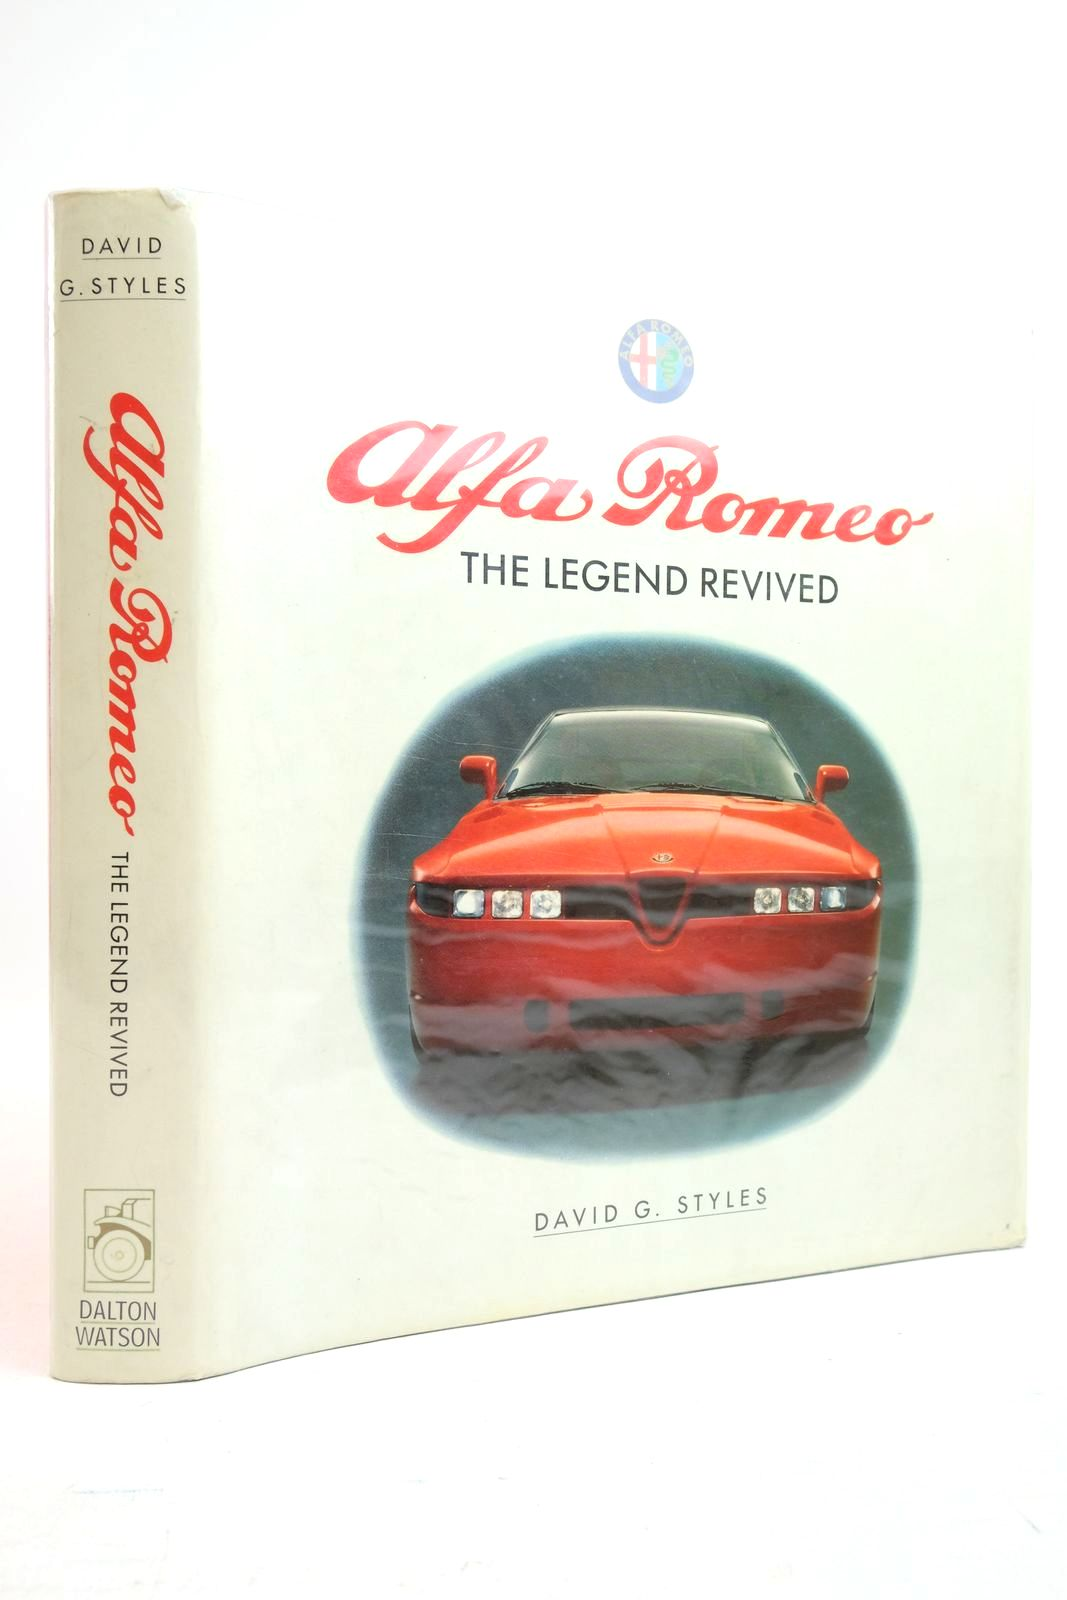 Photo of ALFA ROMEO THE LEGEND REVIVED written by Styles, David G. published by Dalton Watson (STOCK CODE: 2134523)  for sale by Stella & Rose's Books